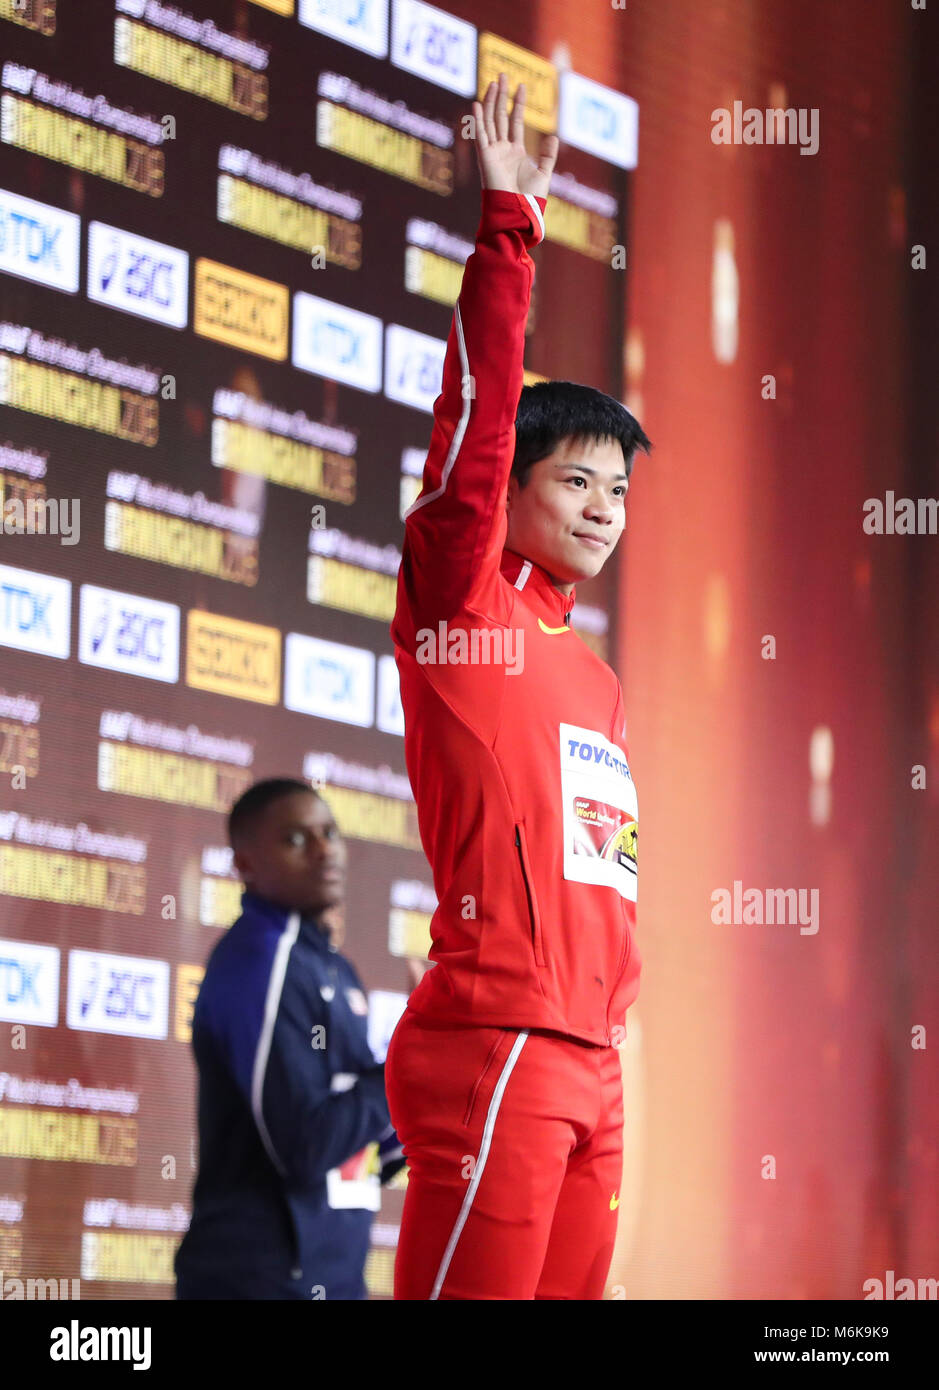 (180305) -- BIRMINGHAM, March 5, 2018 (Xinhua) -- Silver medalist Su Bingtian of China waves during the medal ceremony - Stock Image